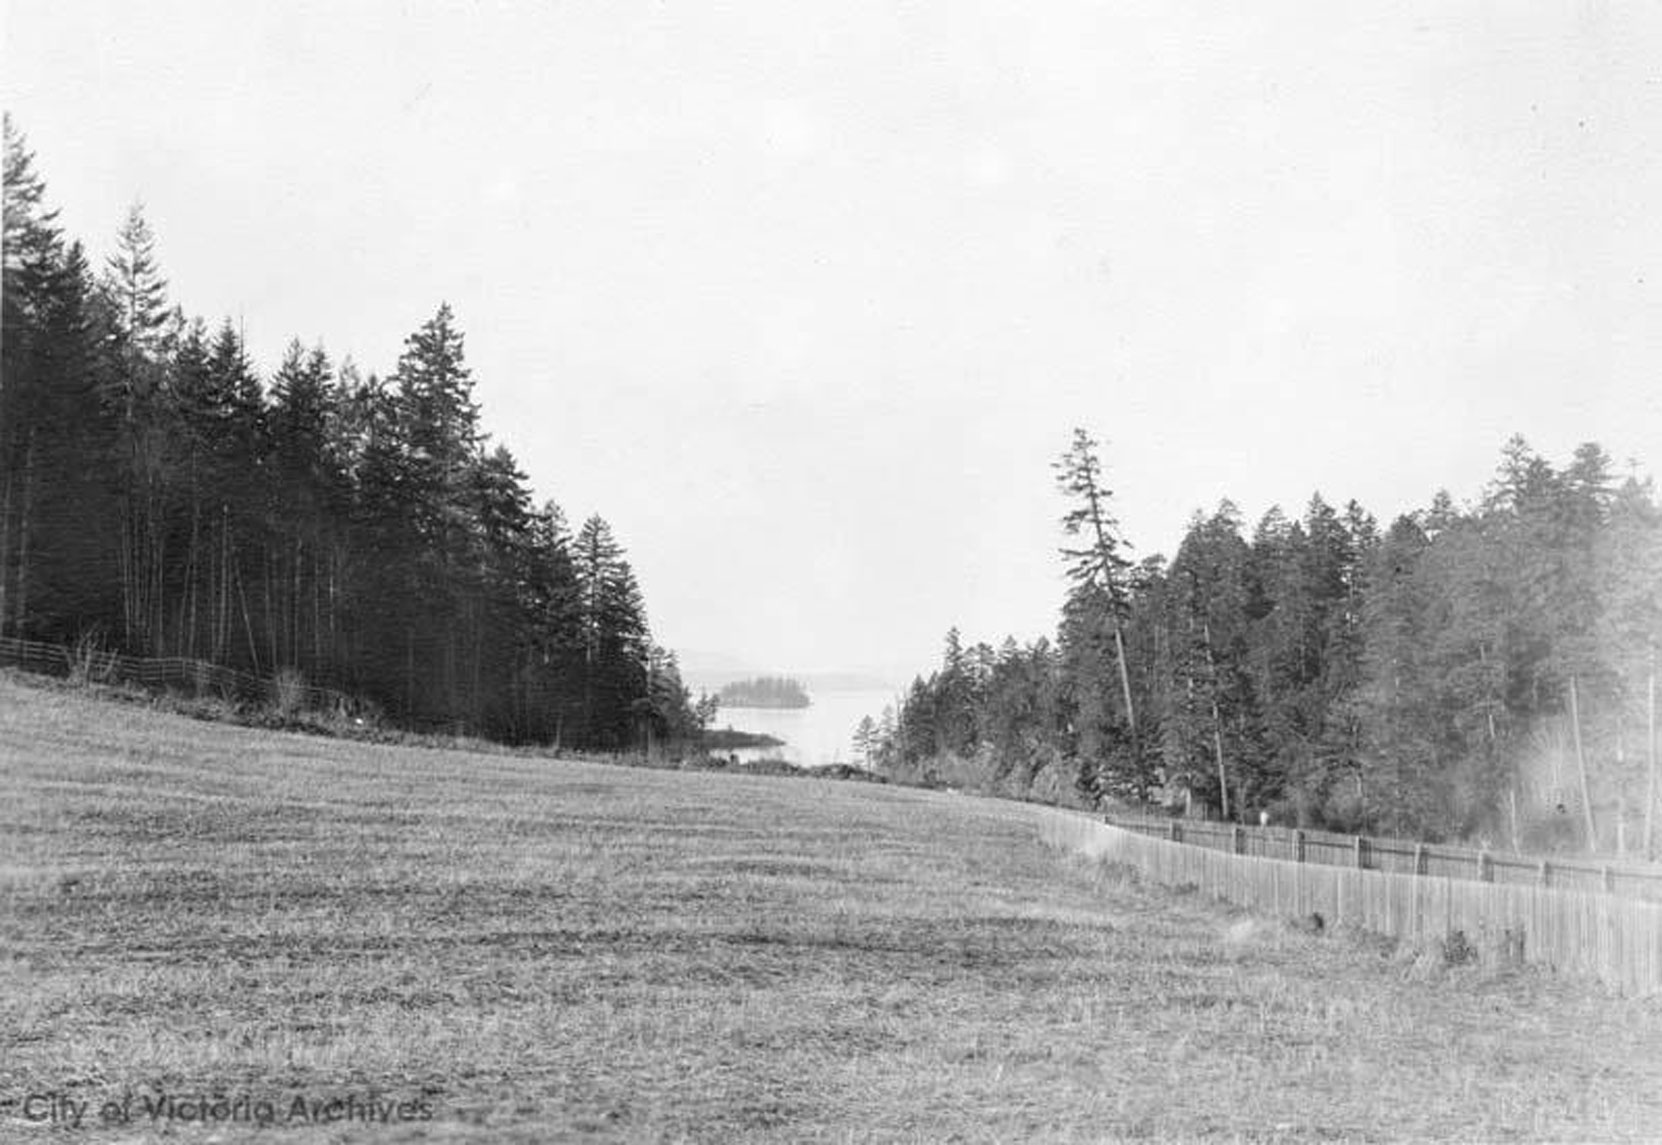 The site of the Japanese Garden, looking north west toward Butchart Cove, circa 1904 (City of Victoria Archives photo M-05823)